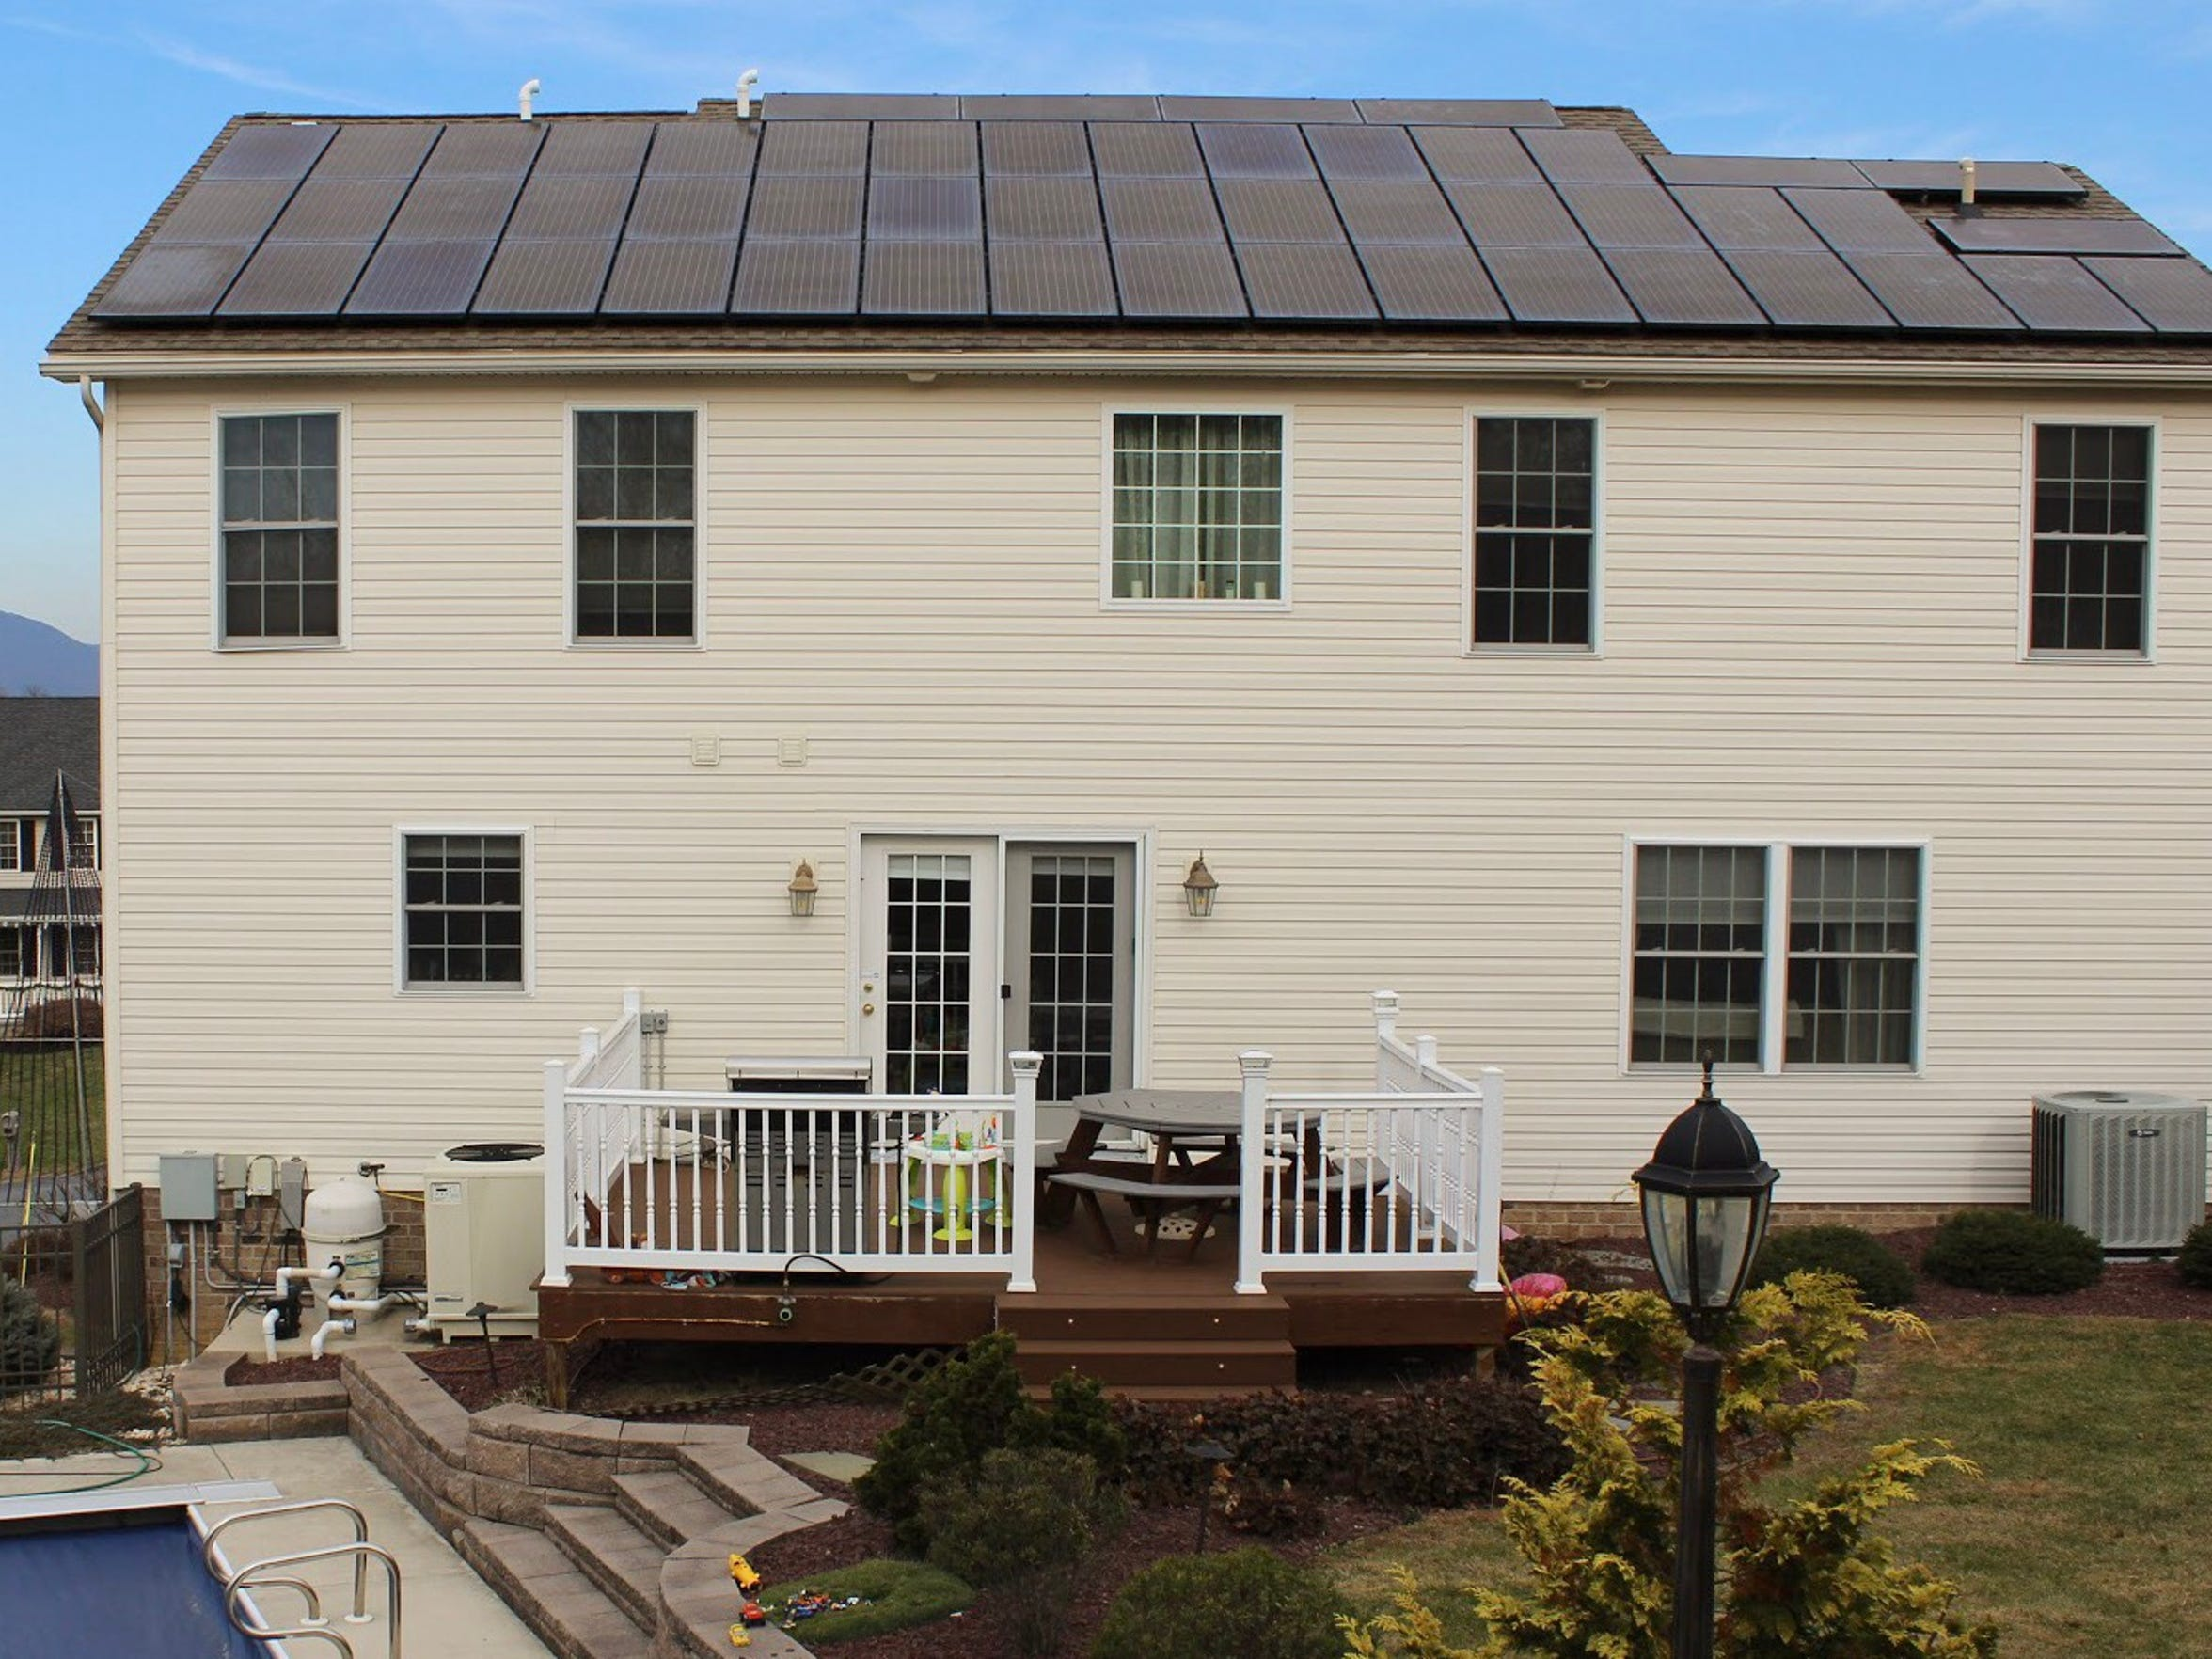 Homeowner Mike Cermak installed solar panels on the roof of his house on Bell Avenue in Chambersburg, which help produce clean, renewable energy. Cermak said the technology is also a way to reduce his and his family's carbon footprint.